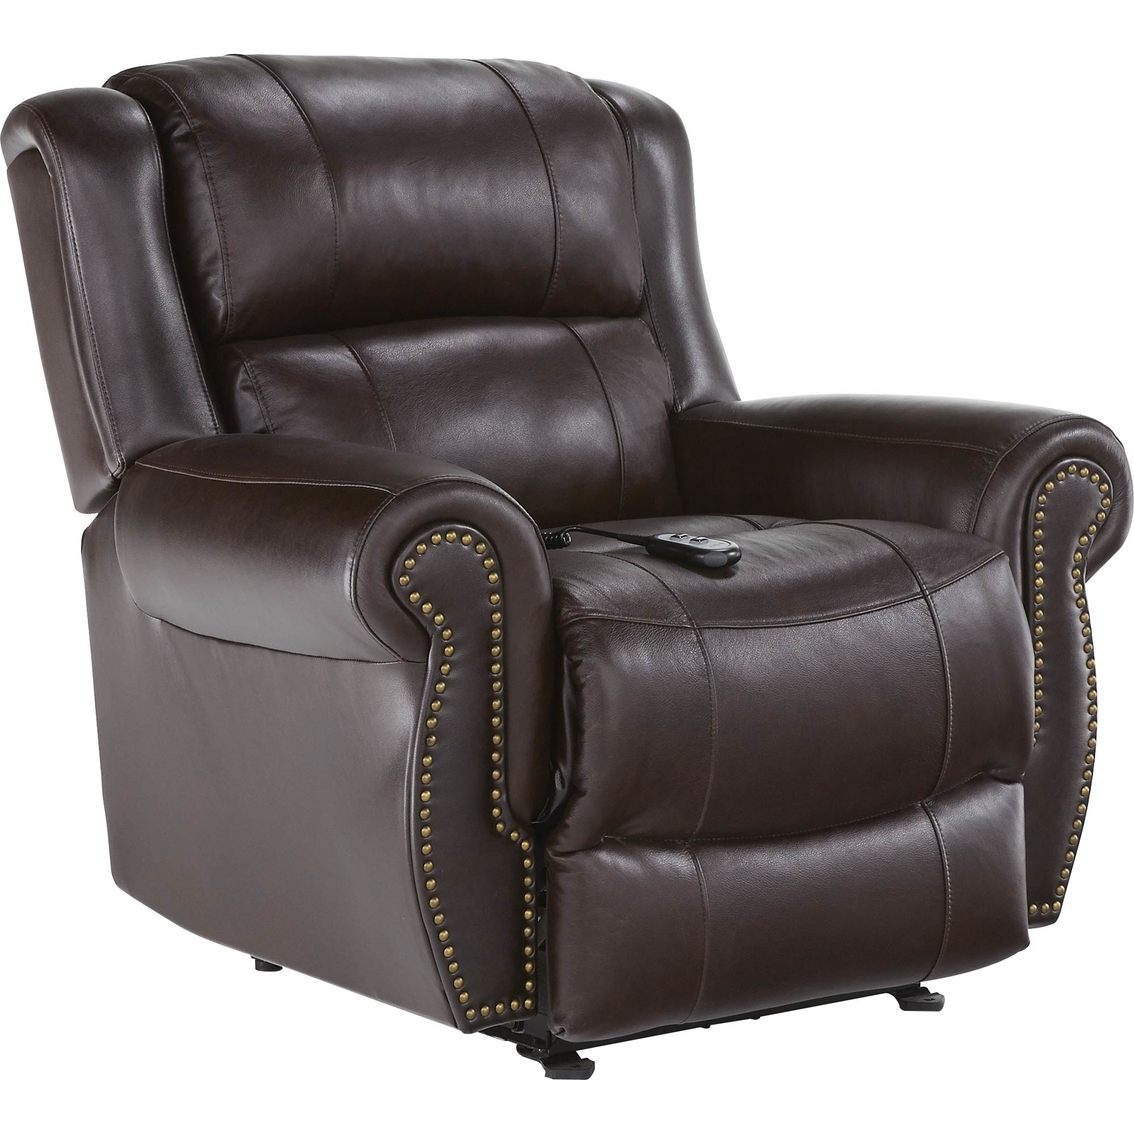 Furniture By Best: Best Home Furnishings Terrill Leather Power Rocker